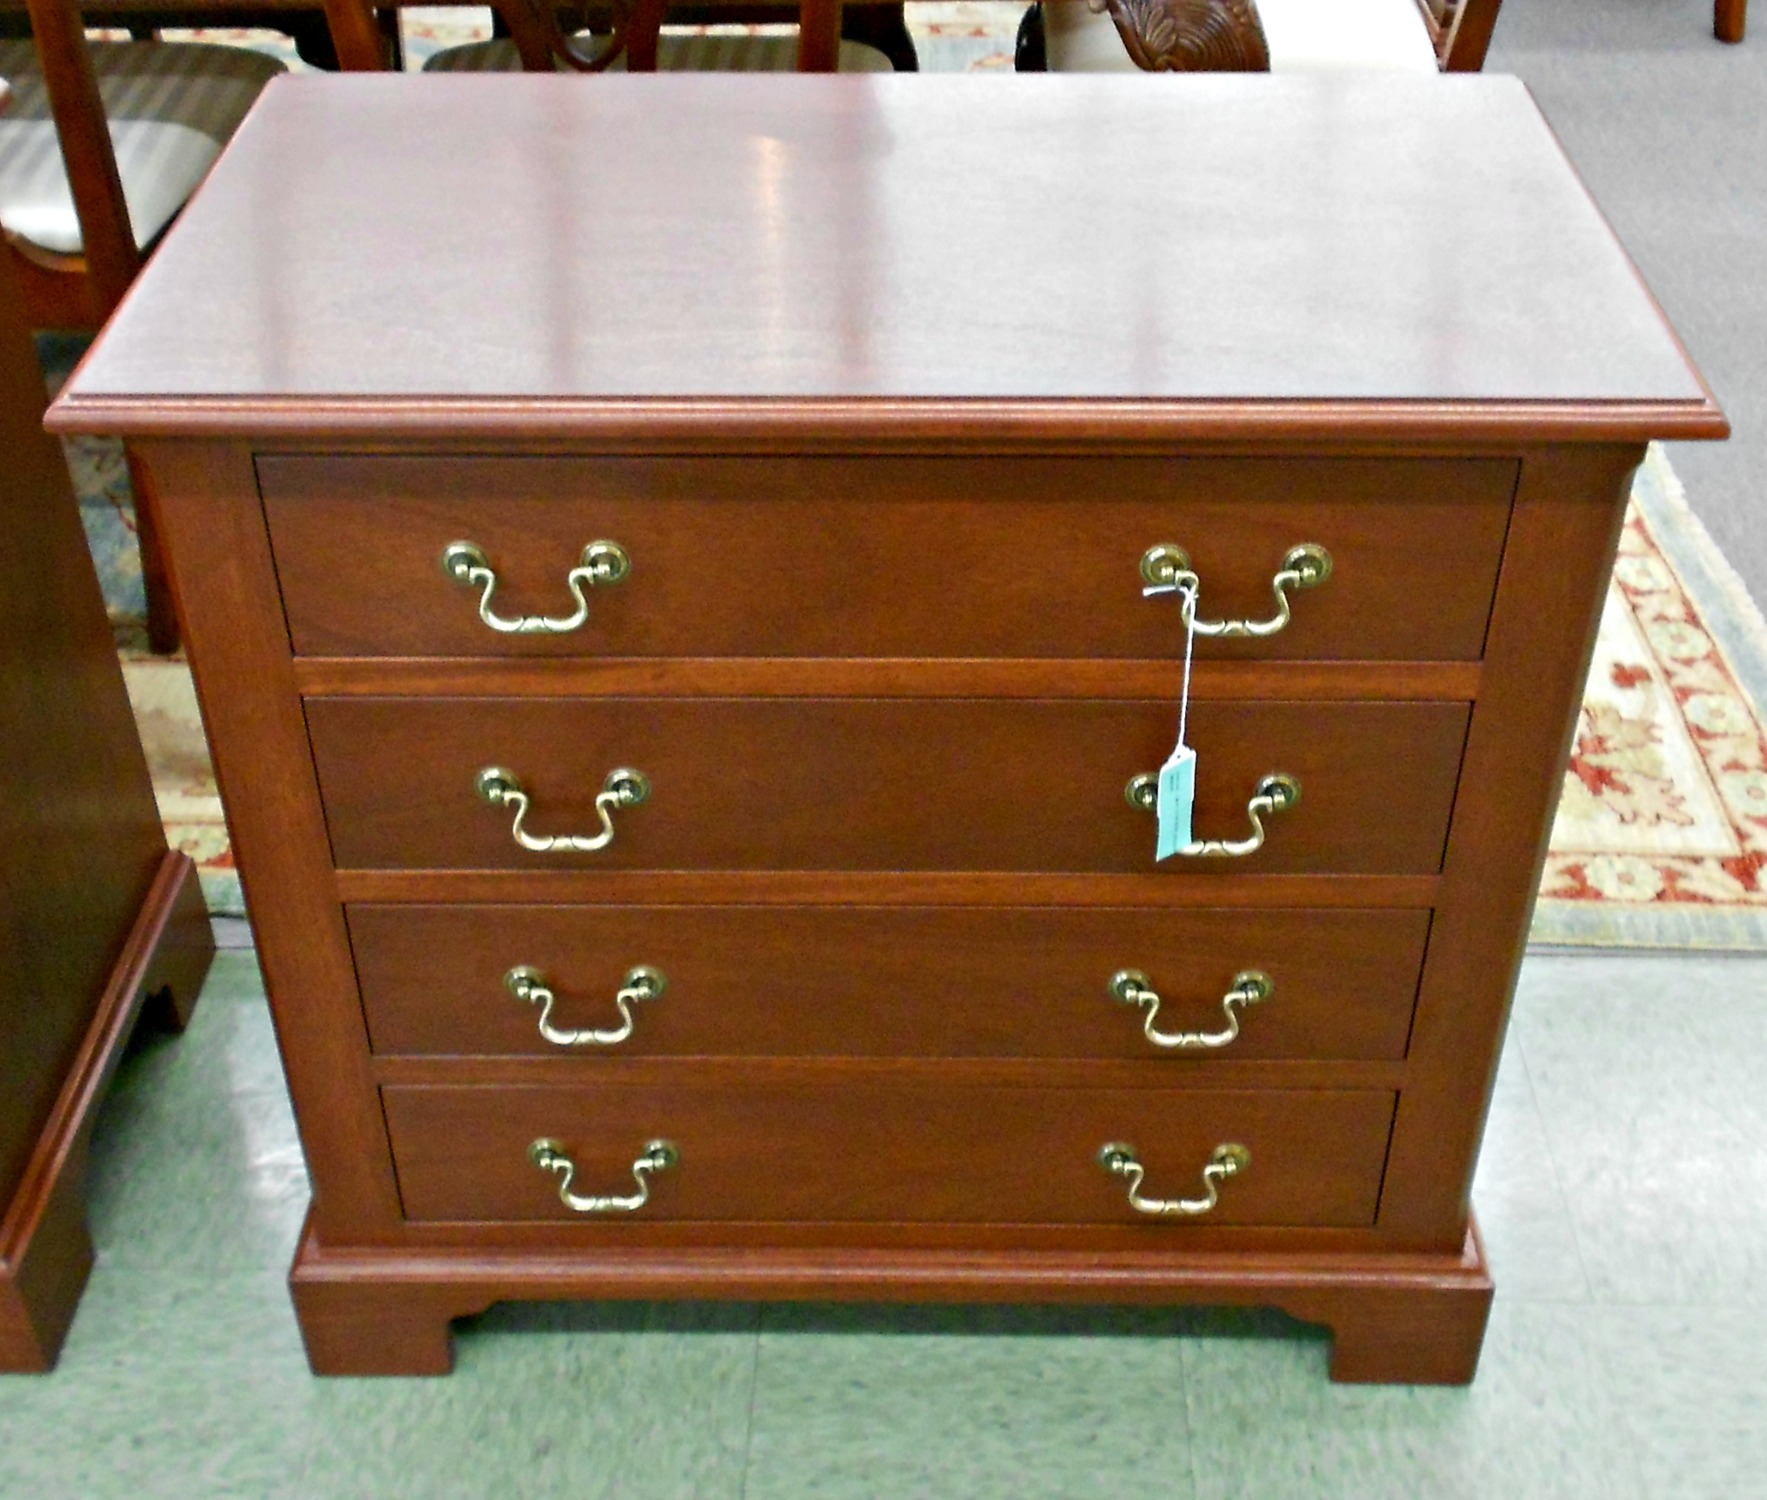 3830-302 Custom Made Mahogany 4 Drawer Bedside Chest